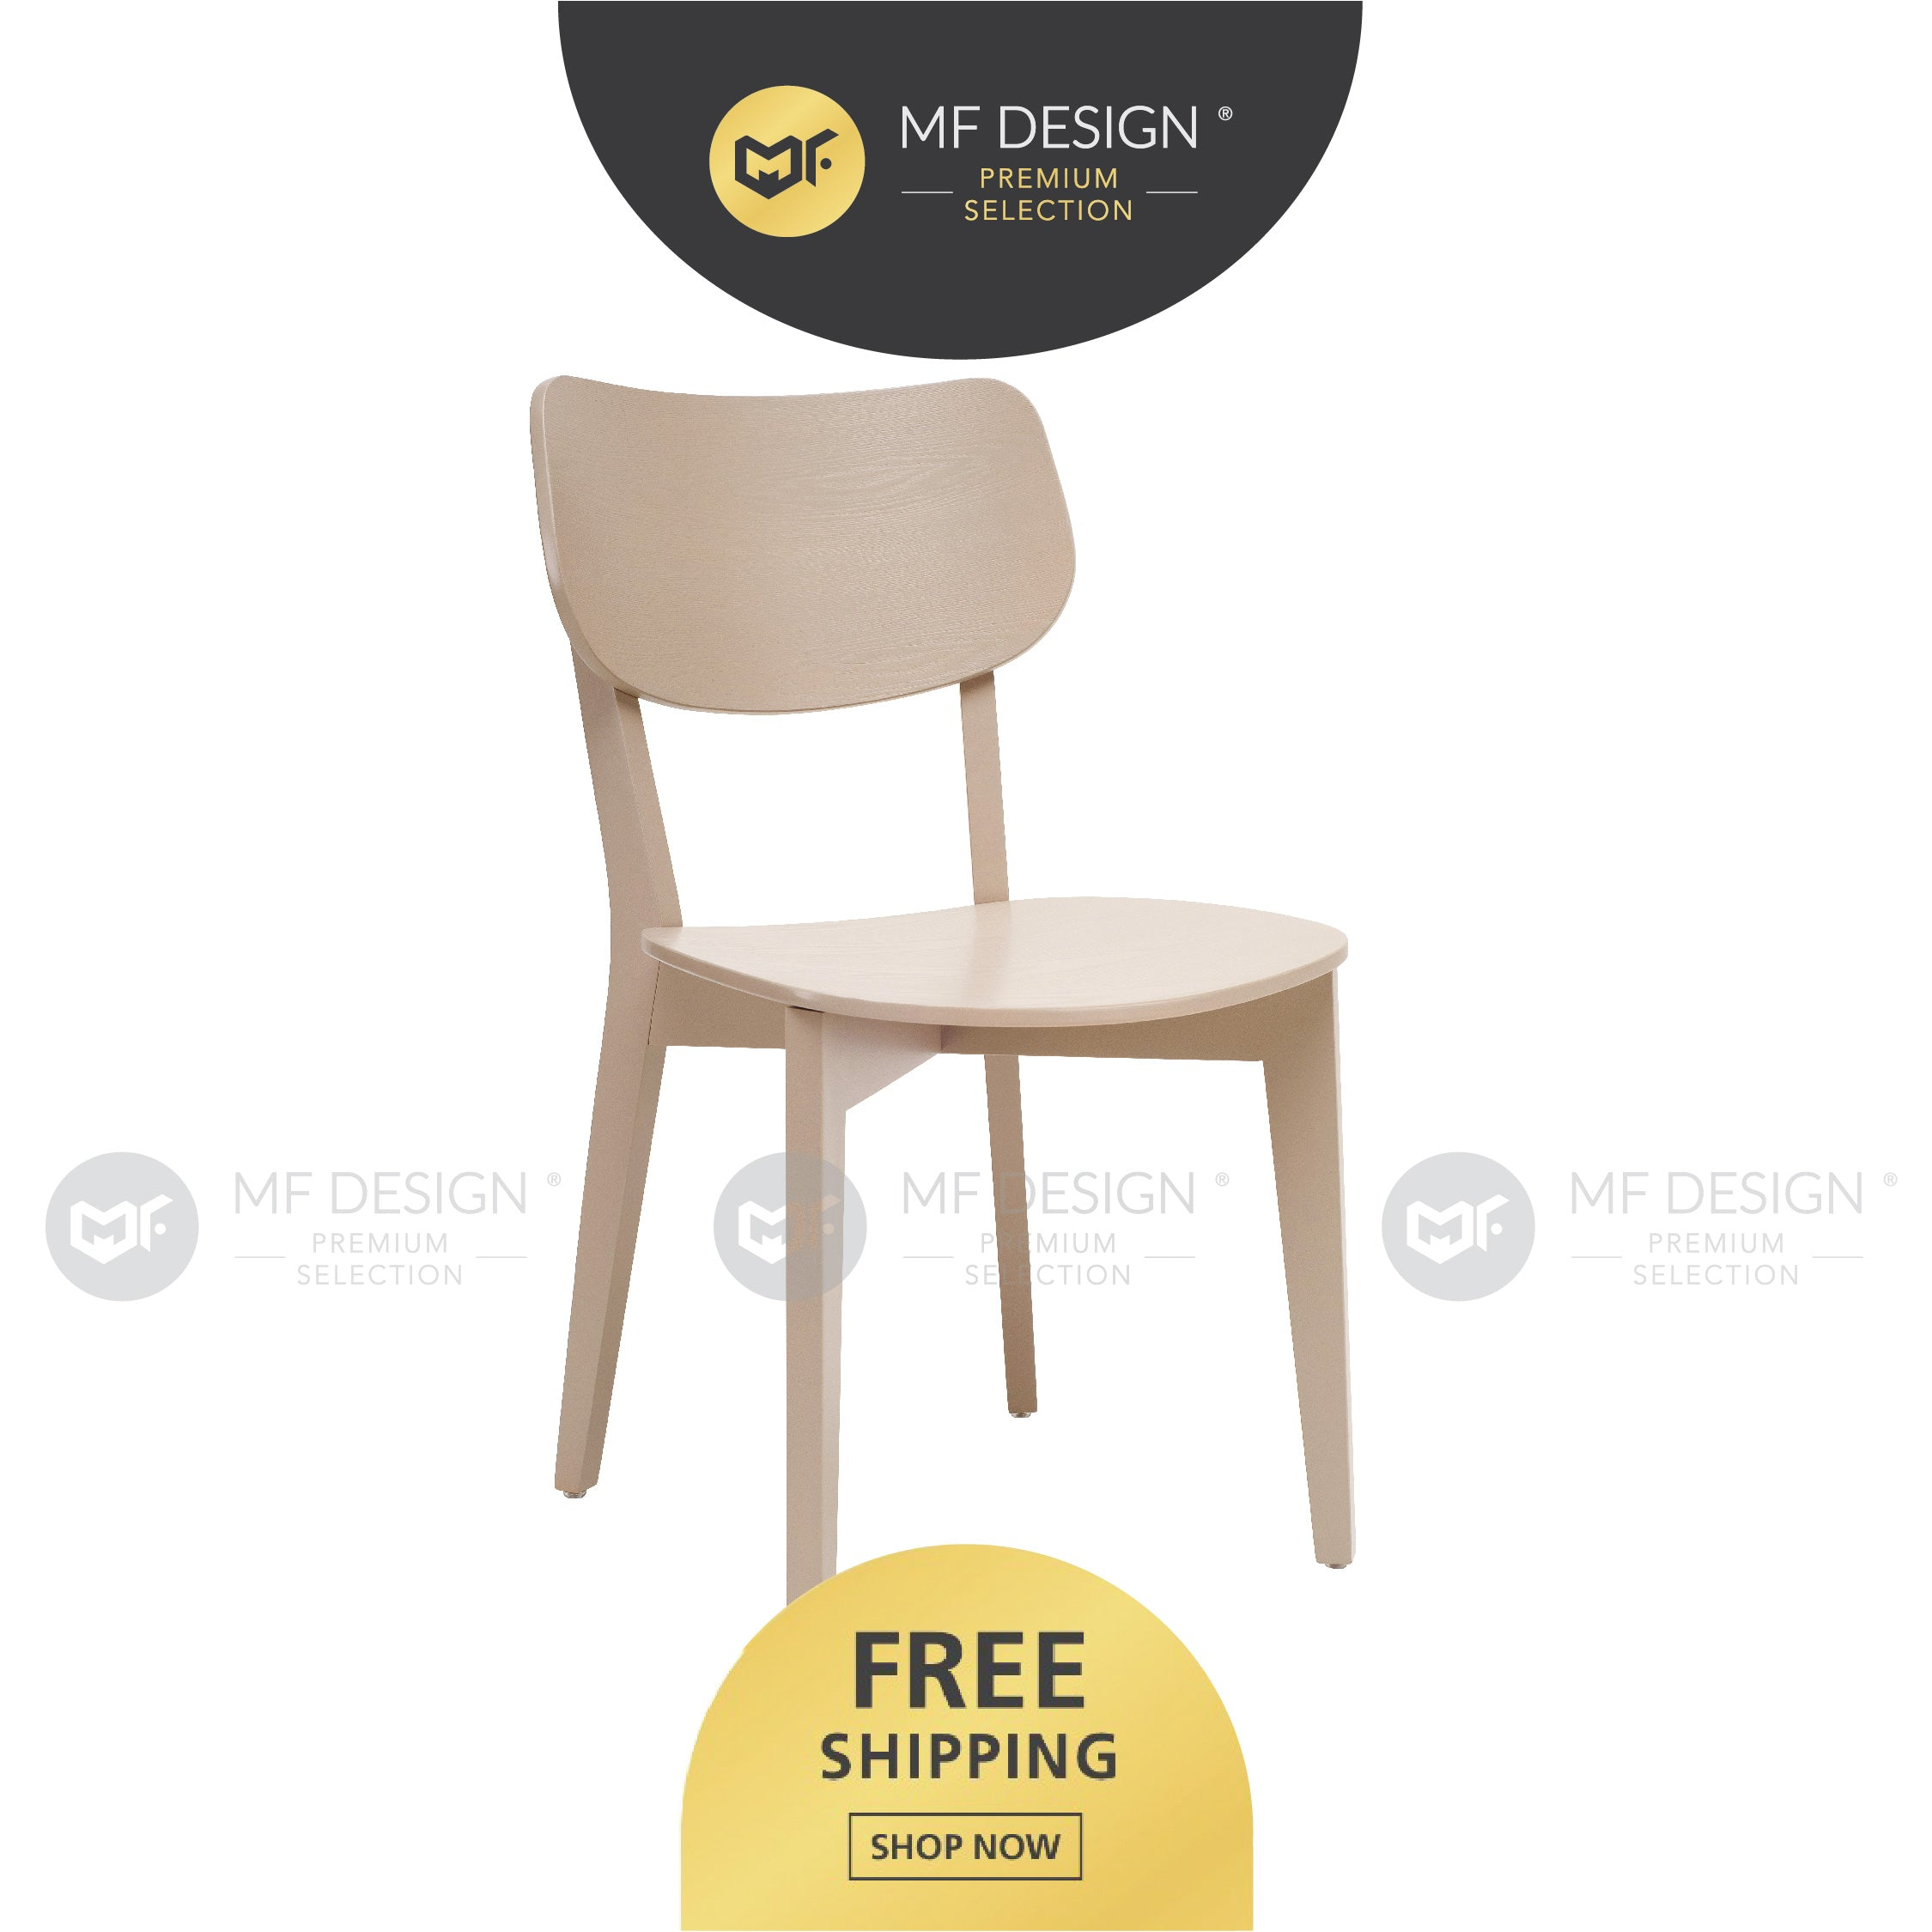 MFD Premium Griffin Dining Chair / kerusi / chair